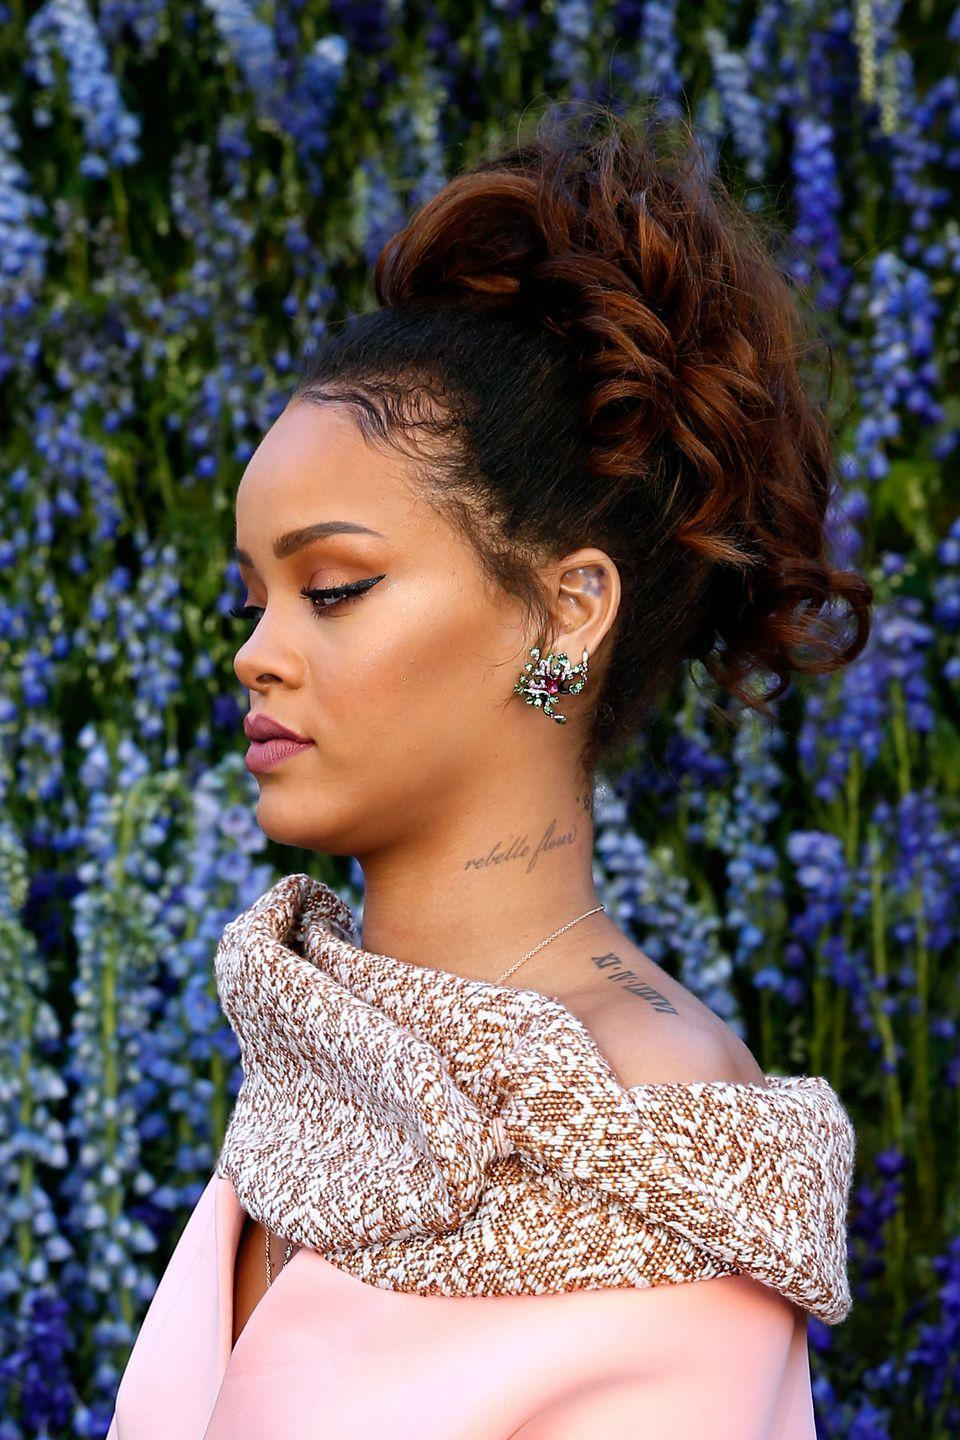 <p>In 2010, Rihanna had the French words 'rebelle fleur' inked permanently on her neck which translates to 'rebel flower'.</p>